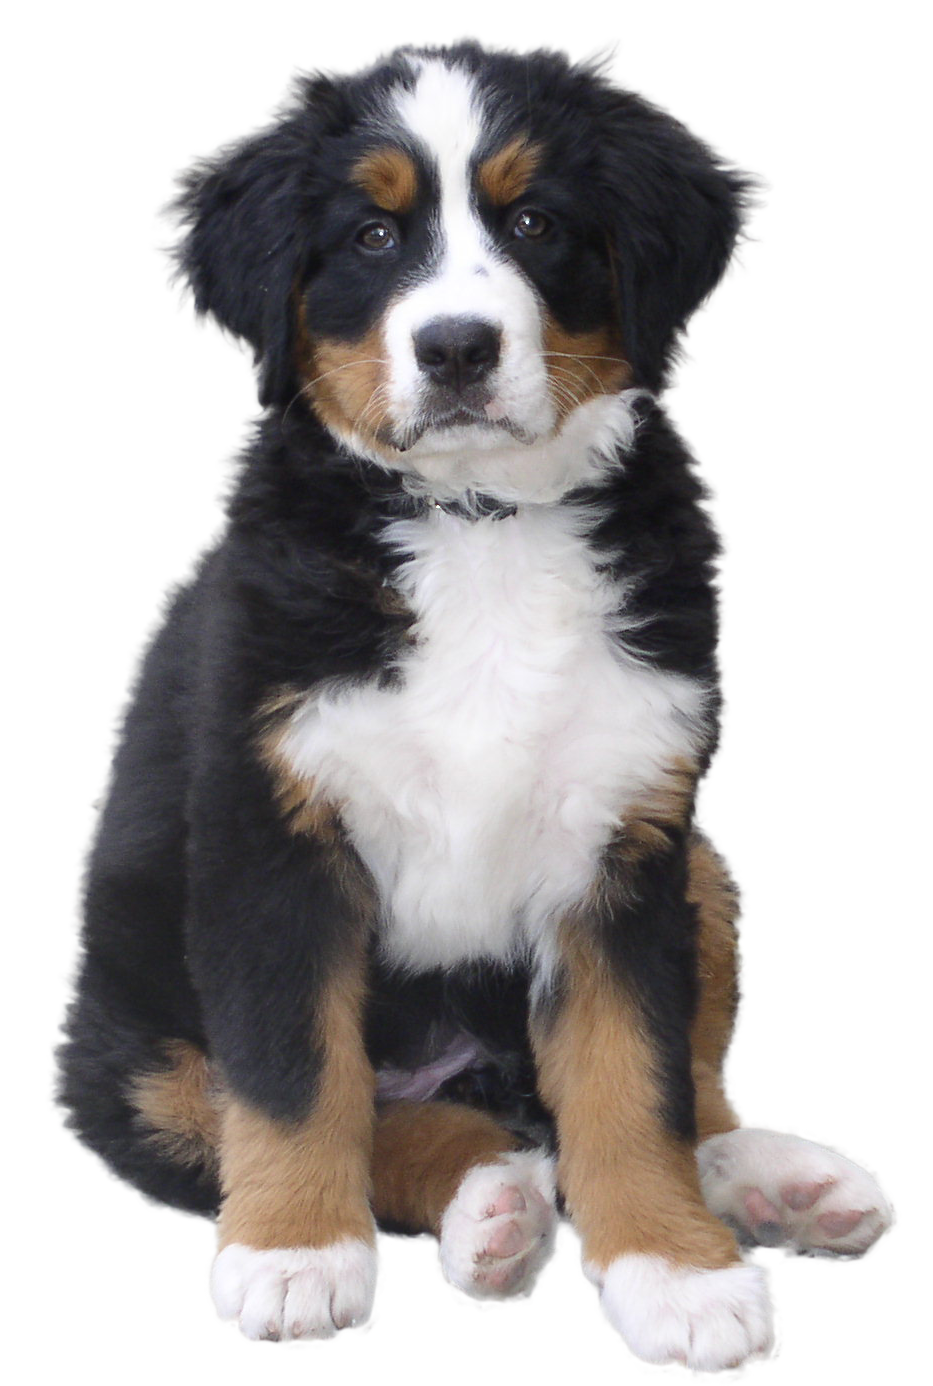 Bernese mountain dog clipart graphic transparent Dogs PNG in High Resolution | Web Icons PNG graphic transparent